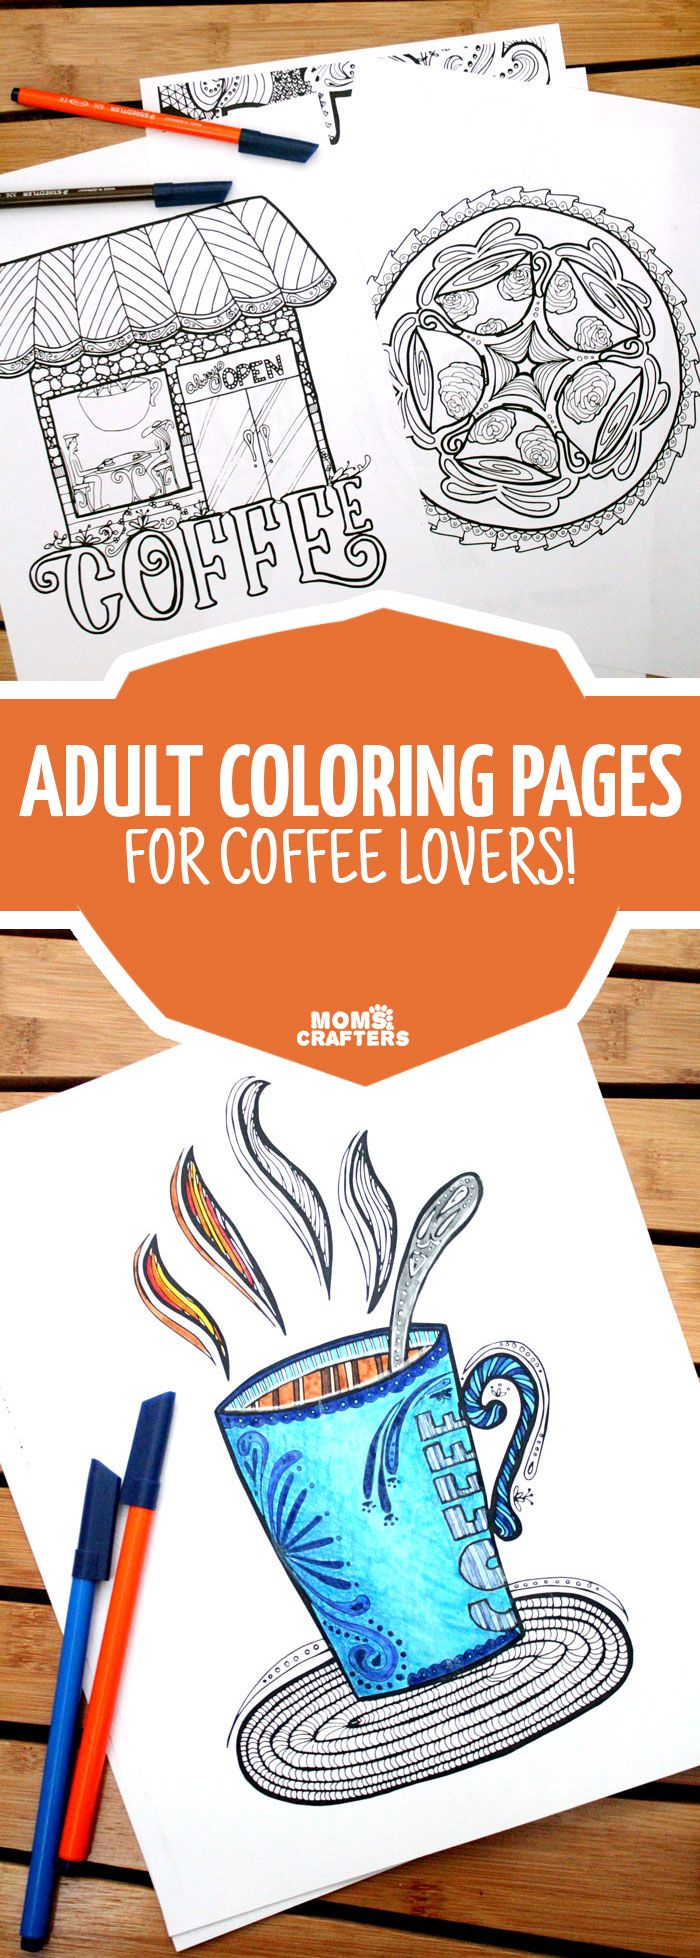 Printable coloring pages beach theme - Grab These Adult Coloring Pages In A Coffee Theme